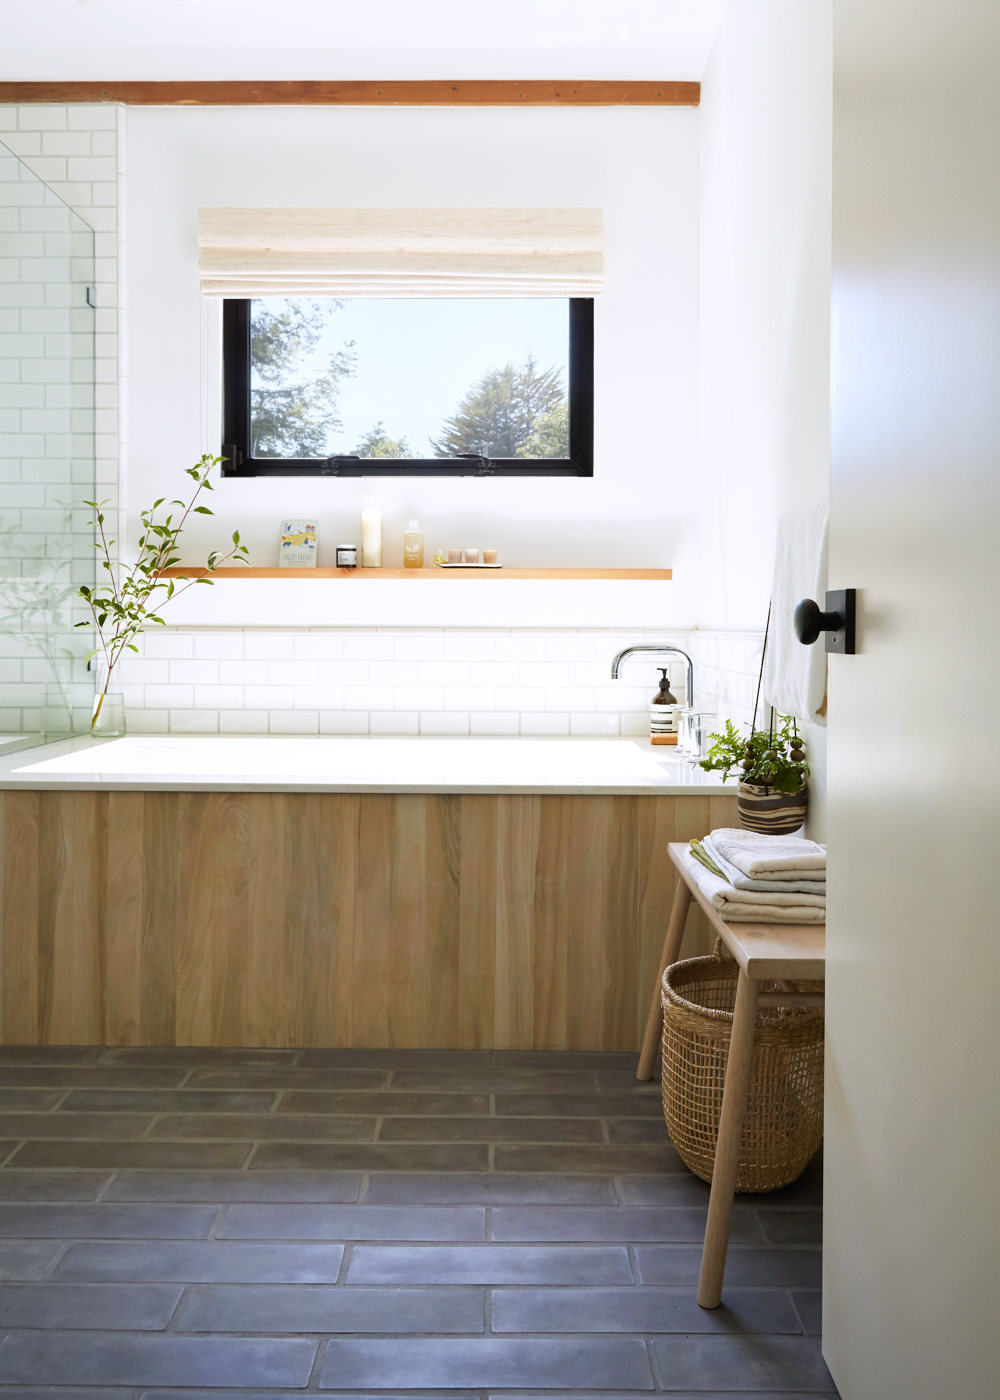 Bathroom of the Week: A Spa-Like Sanctuary in a Sonoma County Cottage